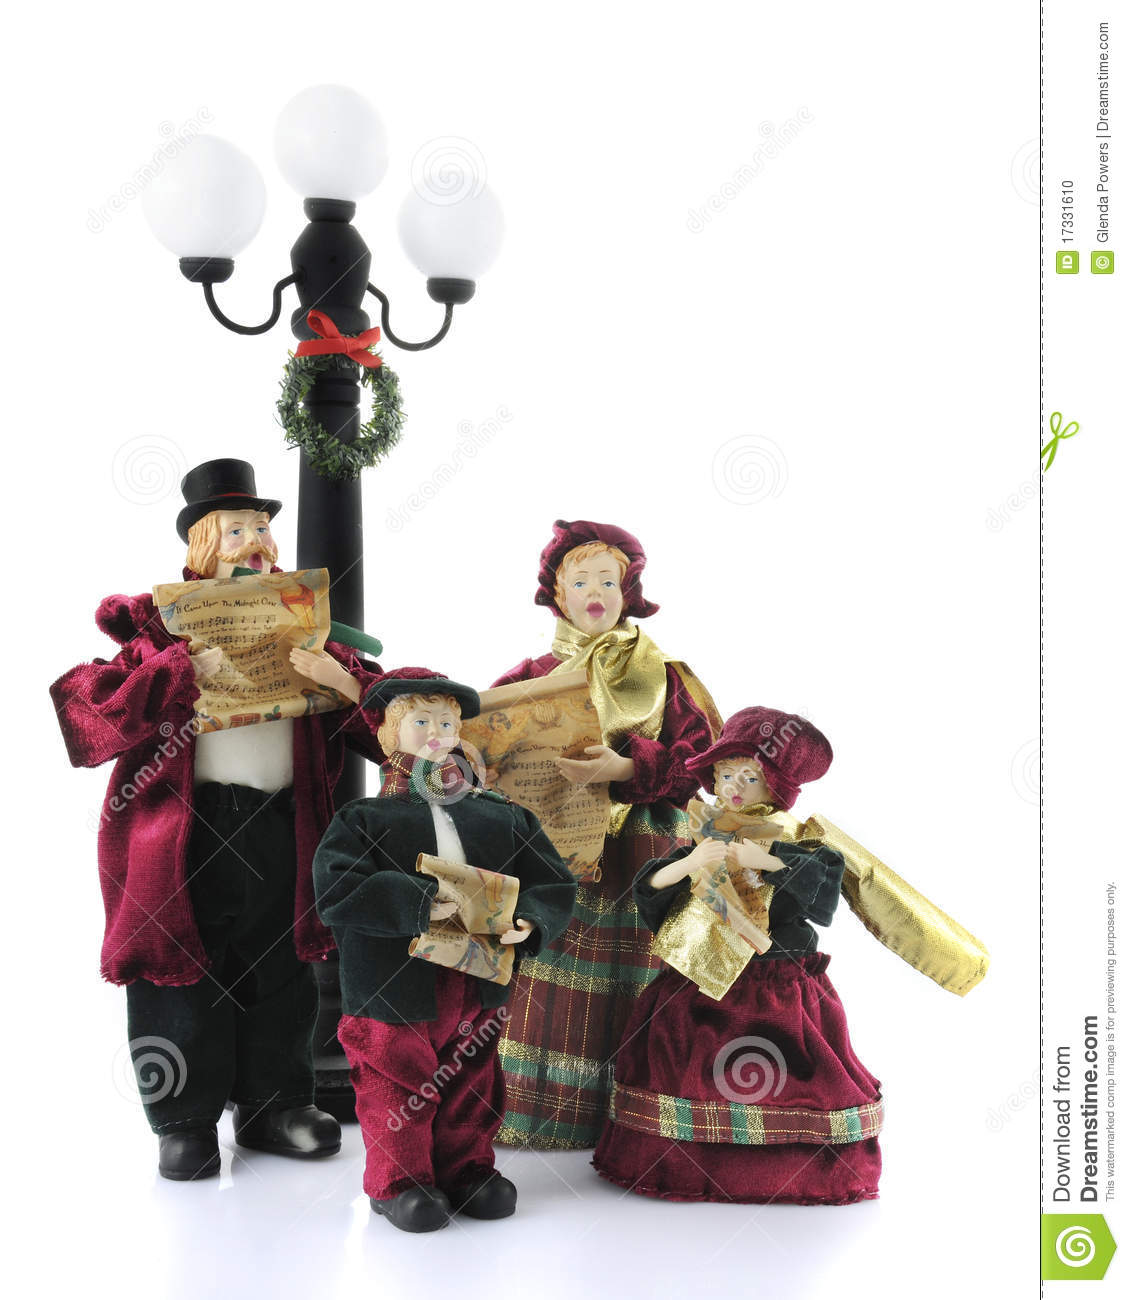 Christmas Caroling Family Set Of 4: Caroling Figurines Stock Photo. Image Of Wreath, Parchment